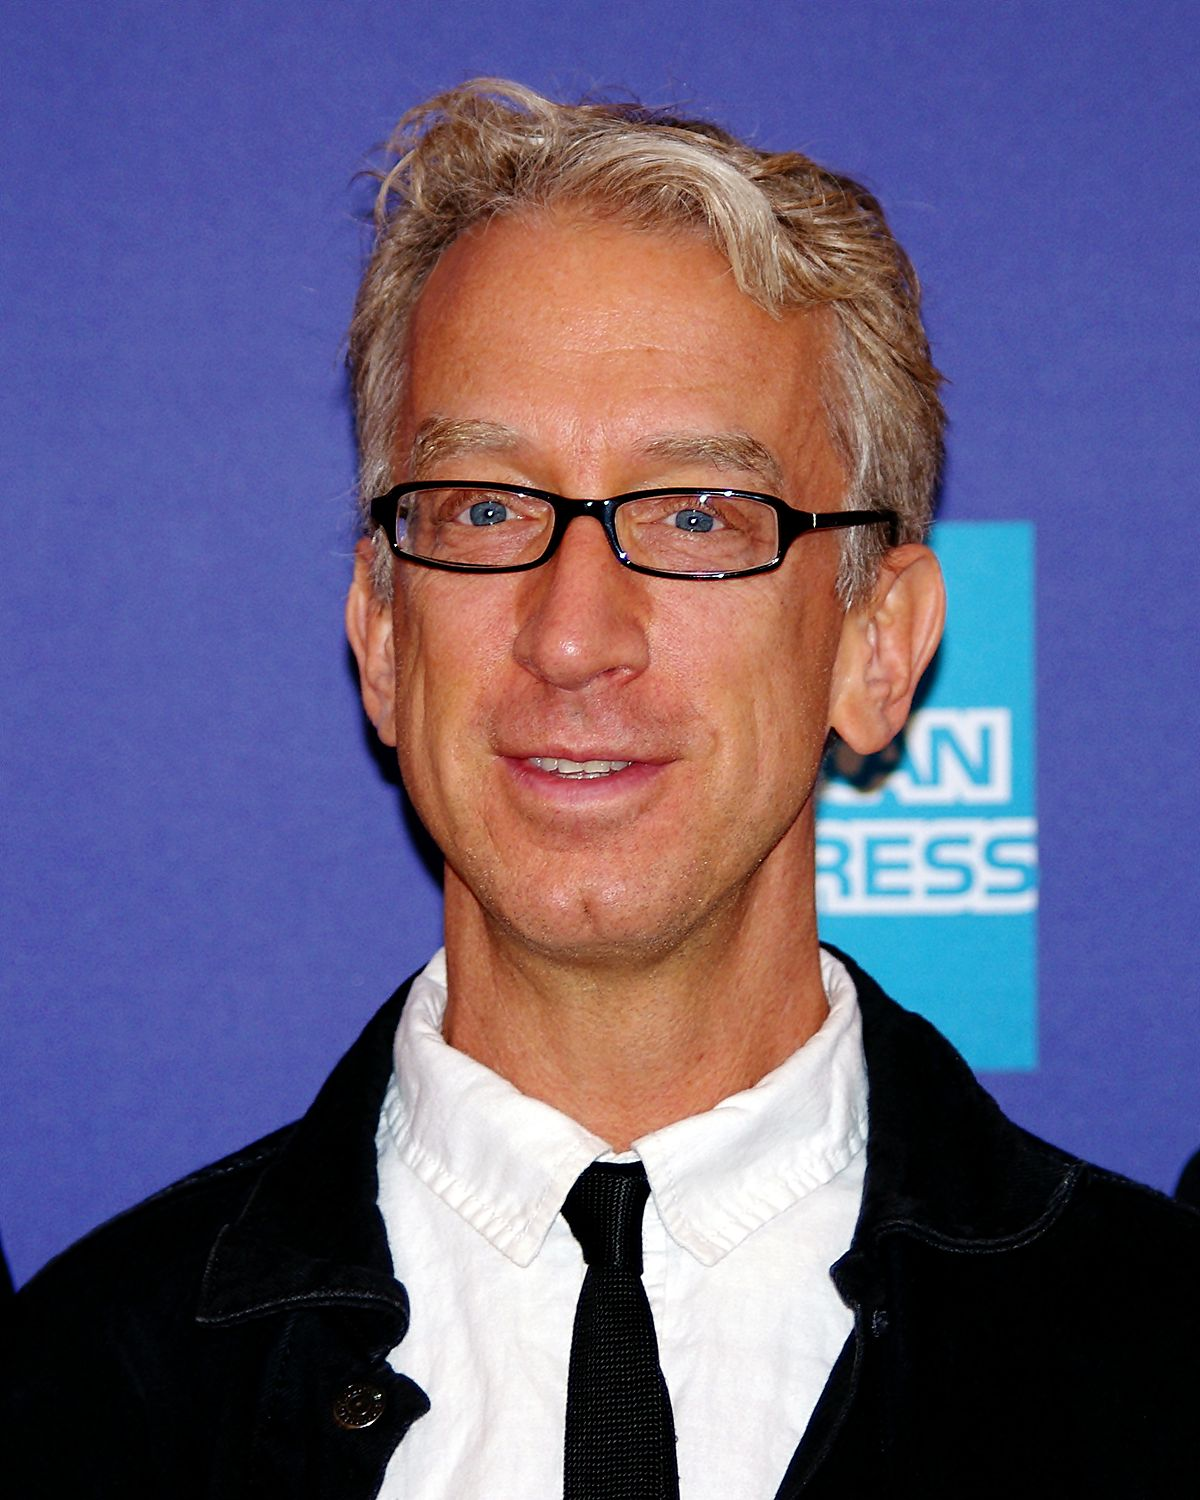 Andy Dick - Wikipedia